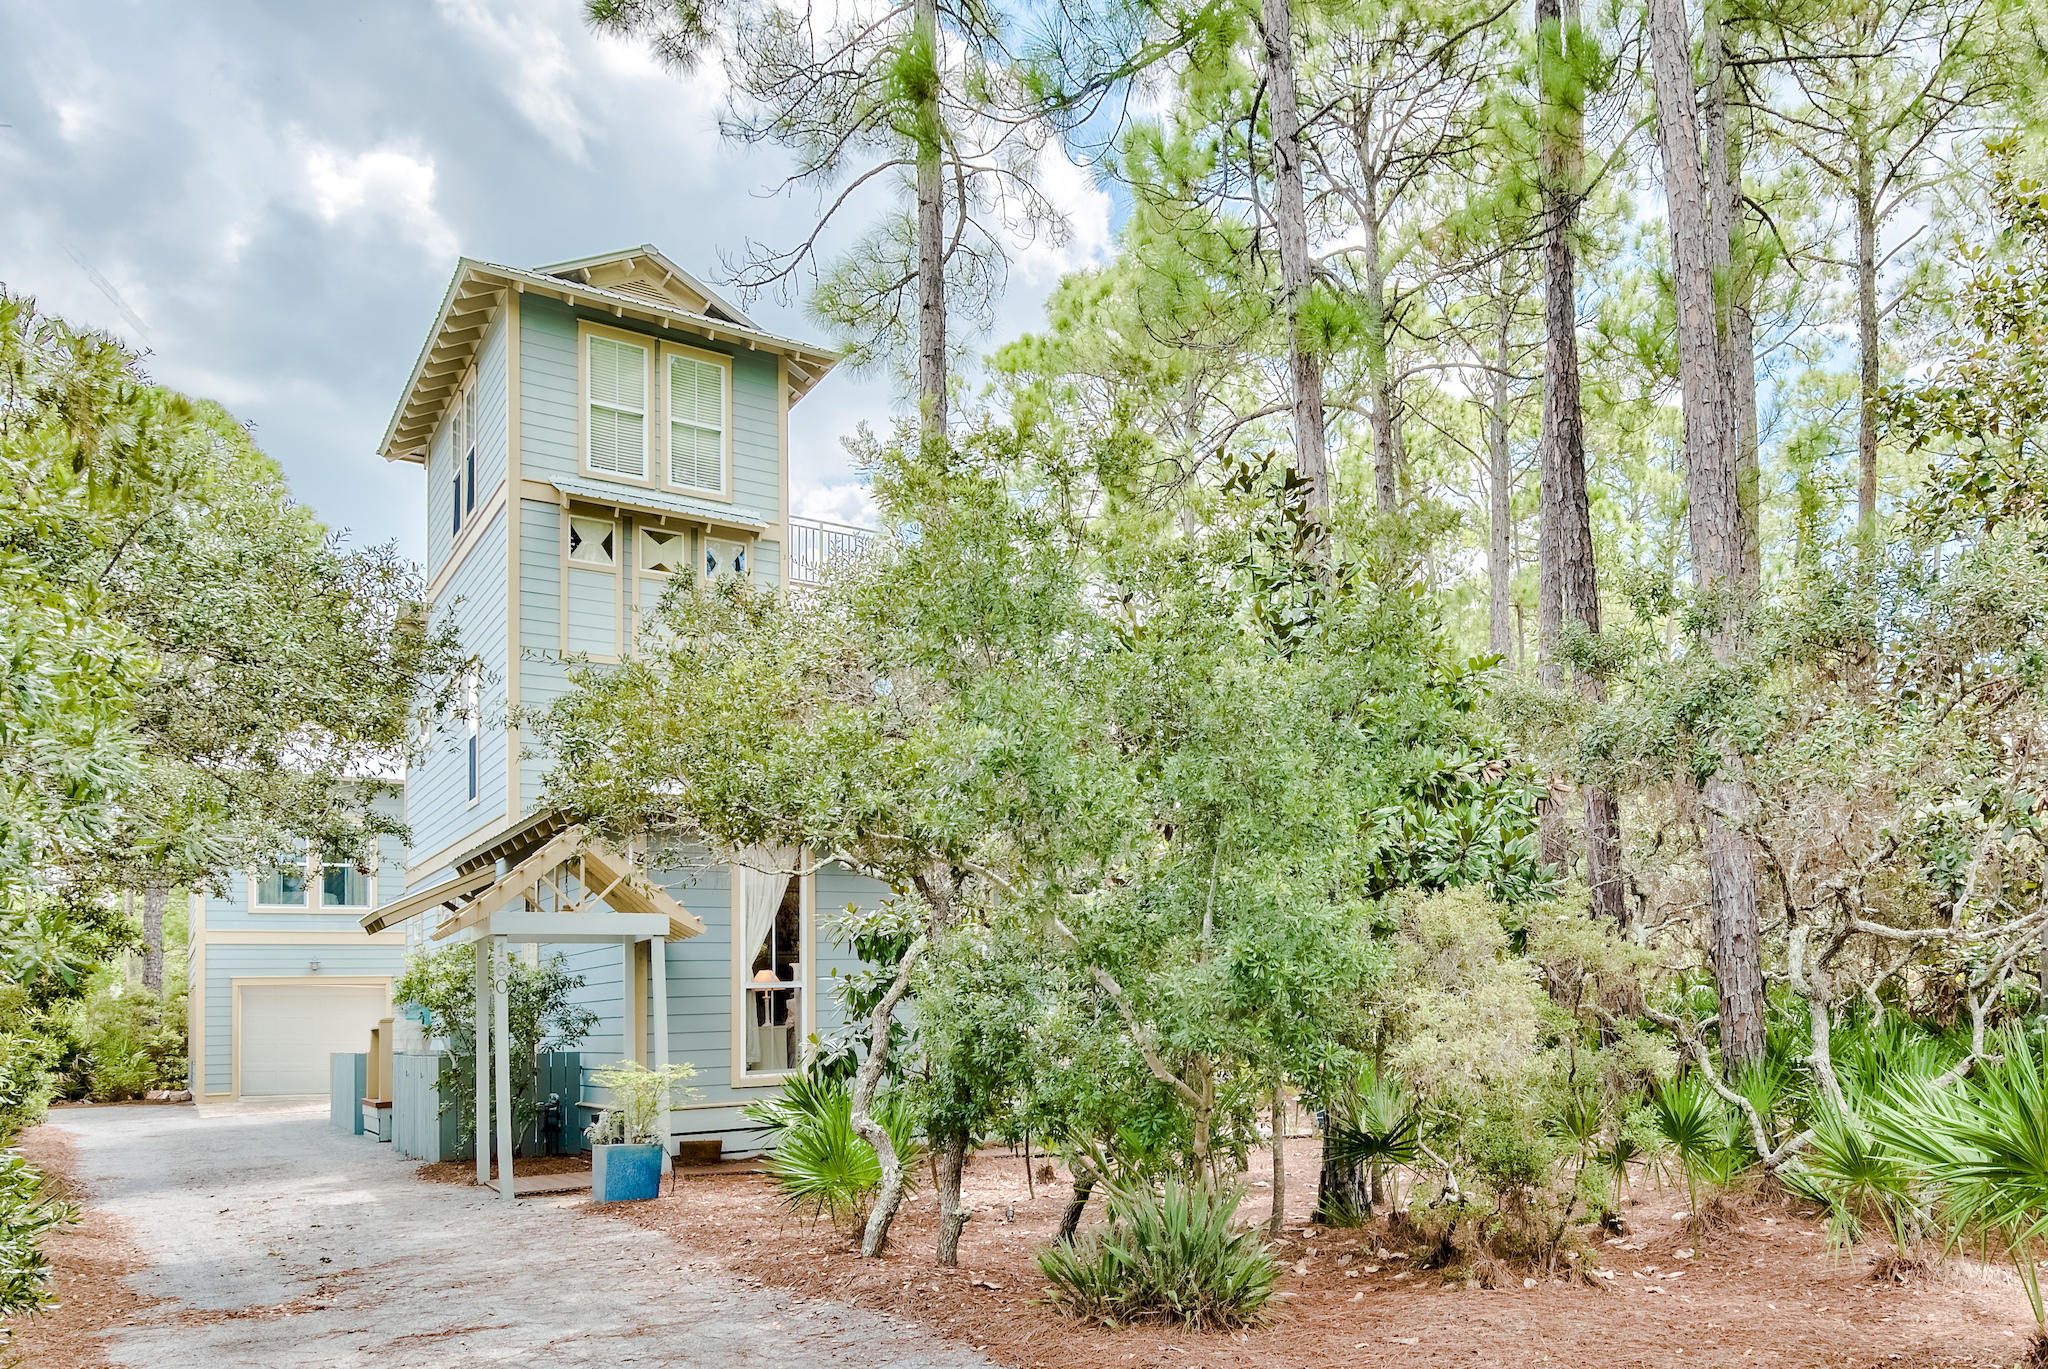 160 Andalusia Ave, Santa Rosa Beach, FL, 32459